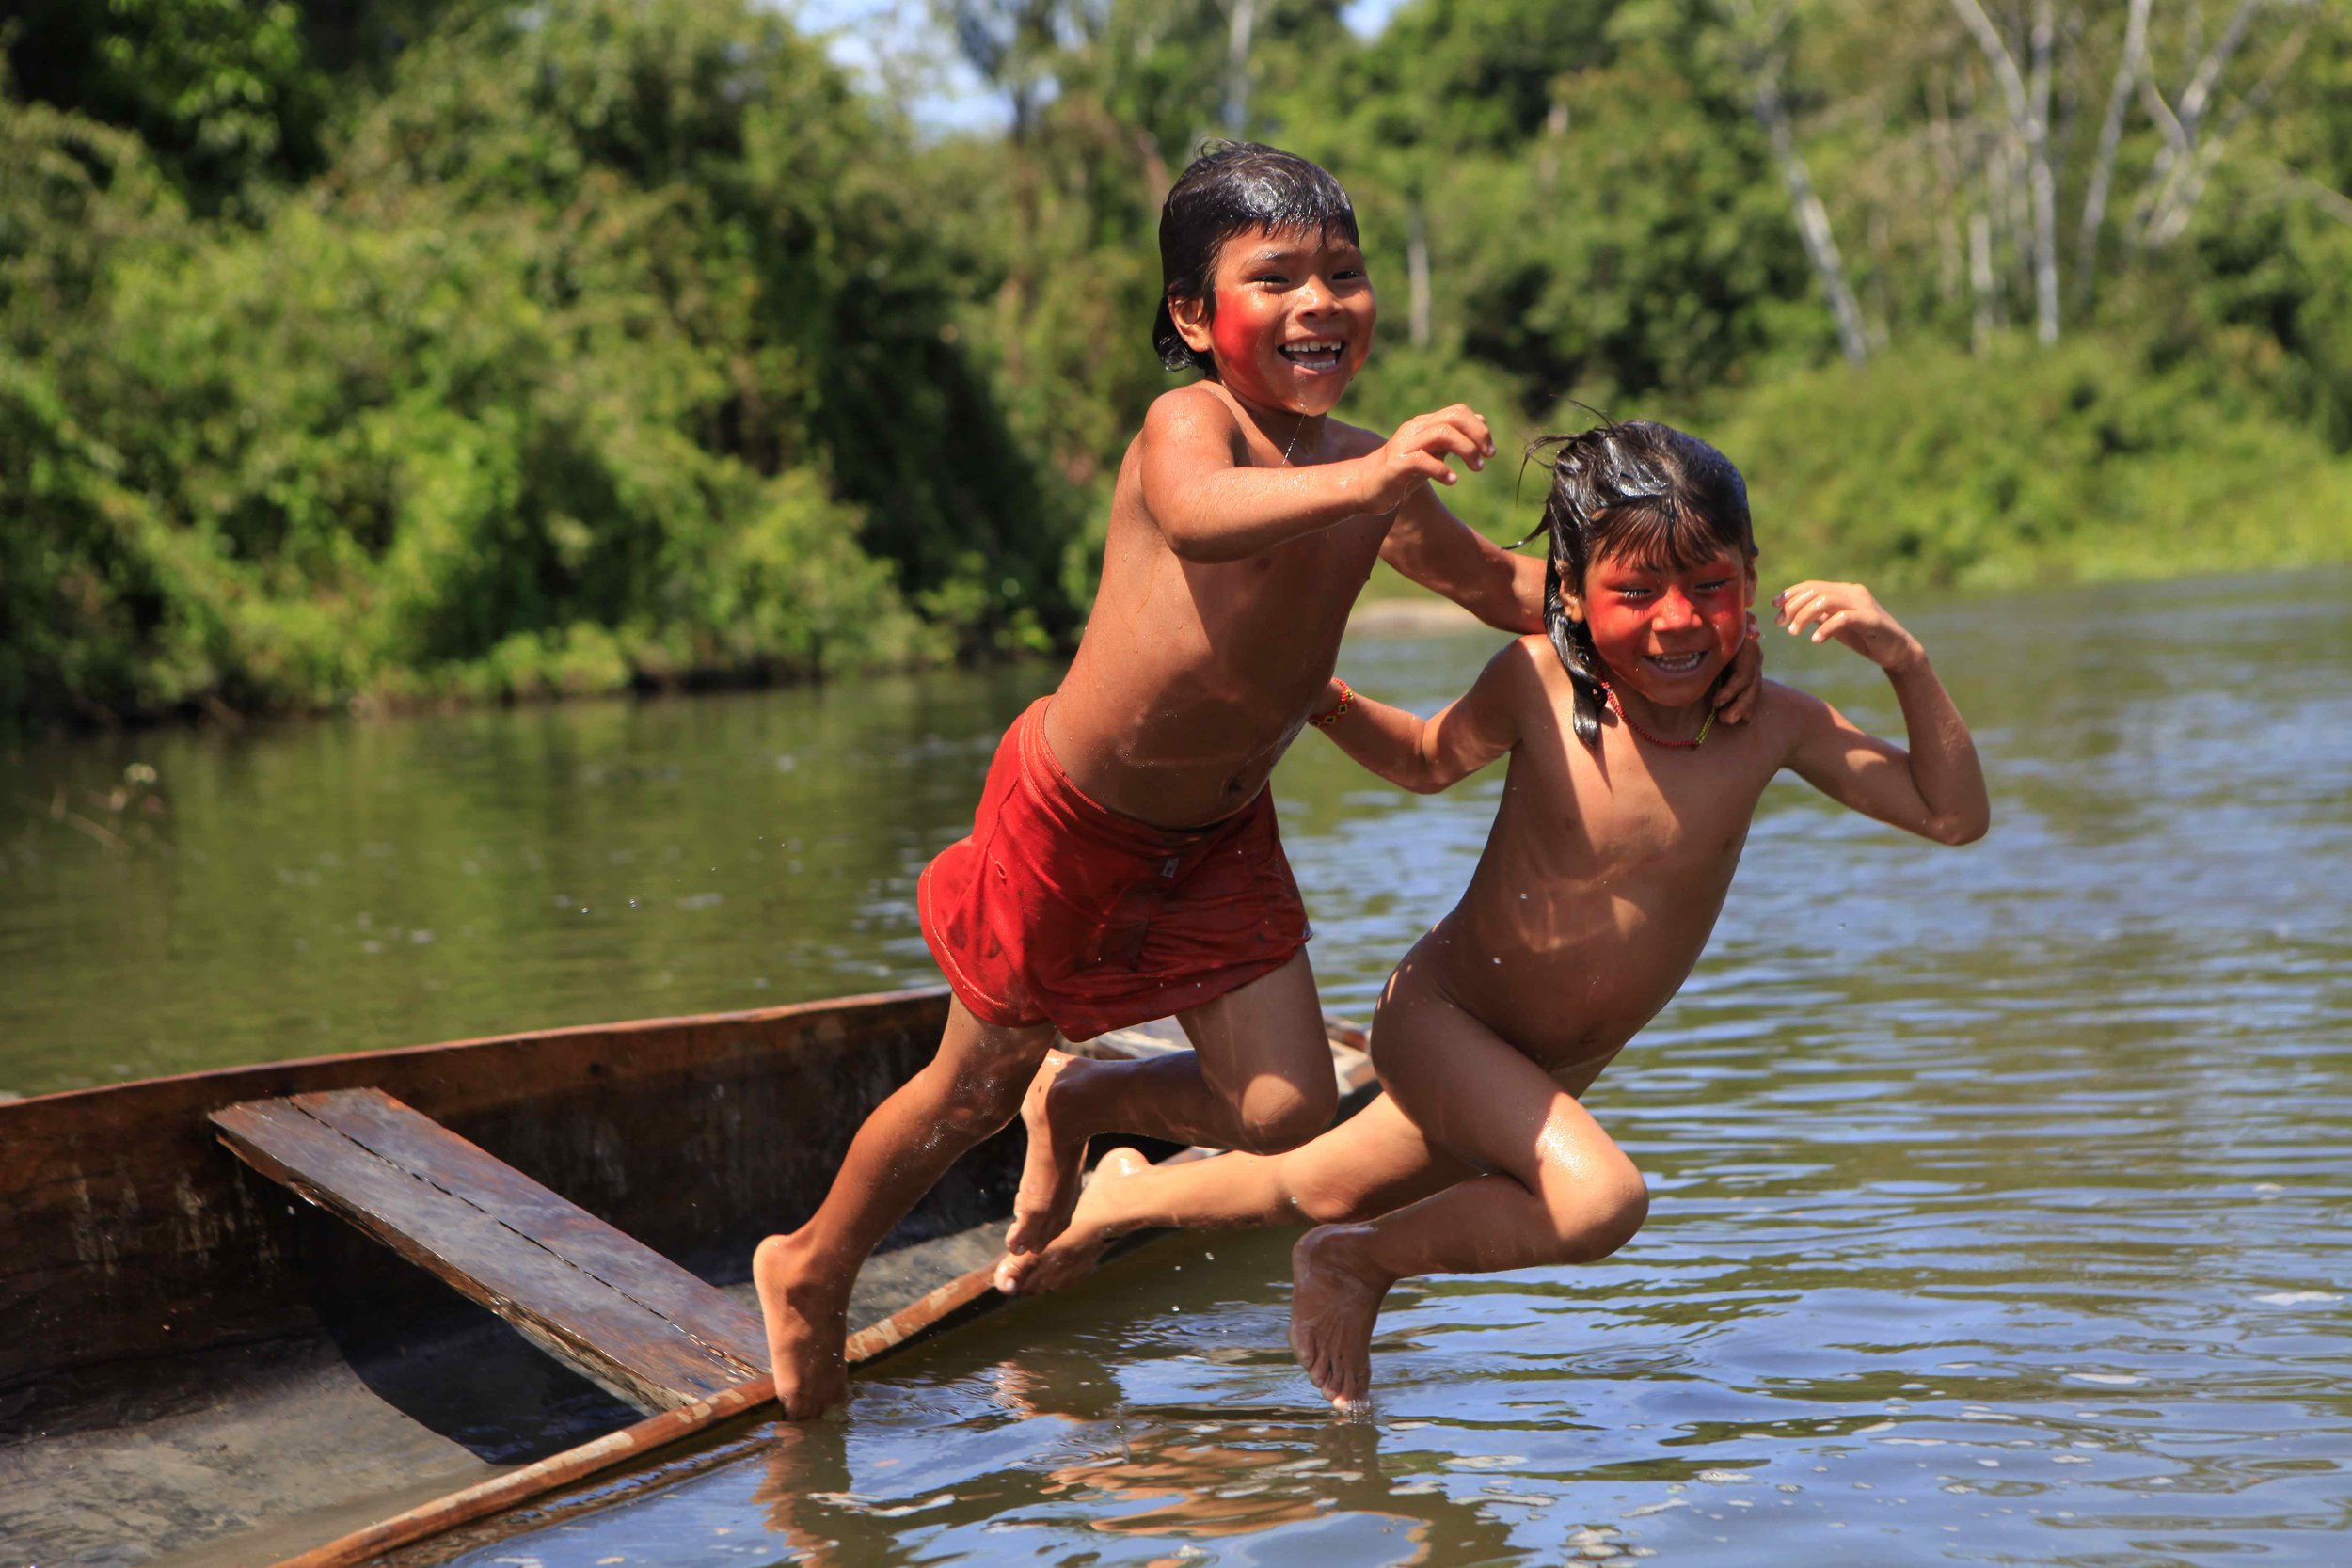 The Guardian - 'The river is life!' - a photographer among the Arawete in Brazil